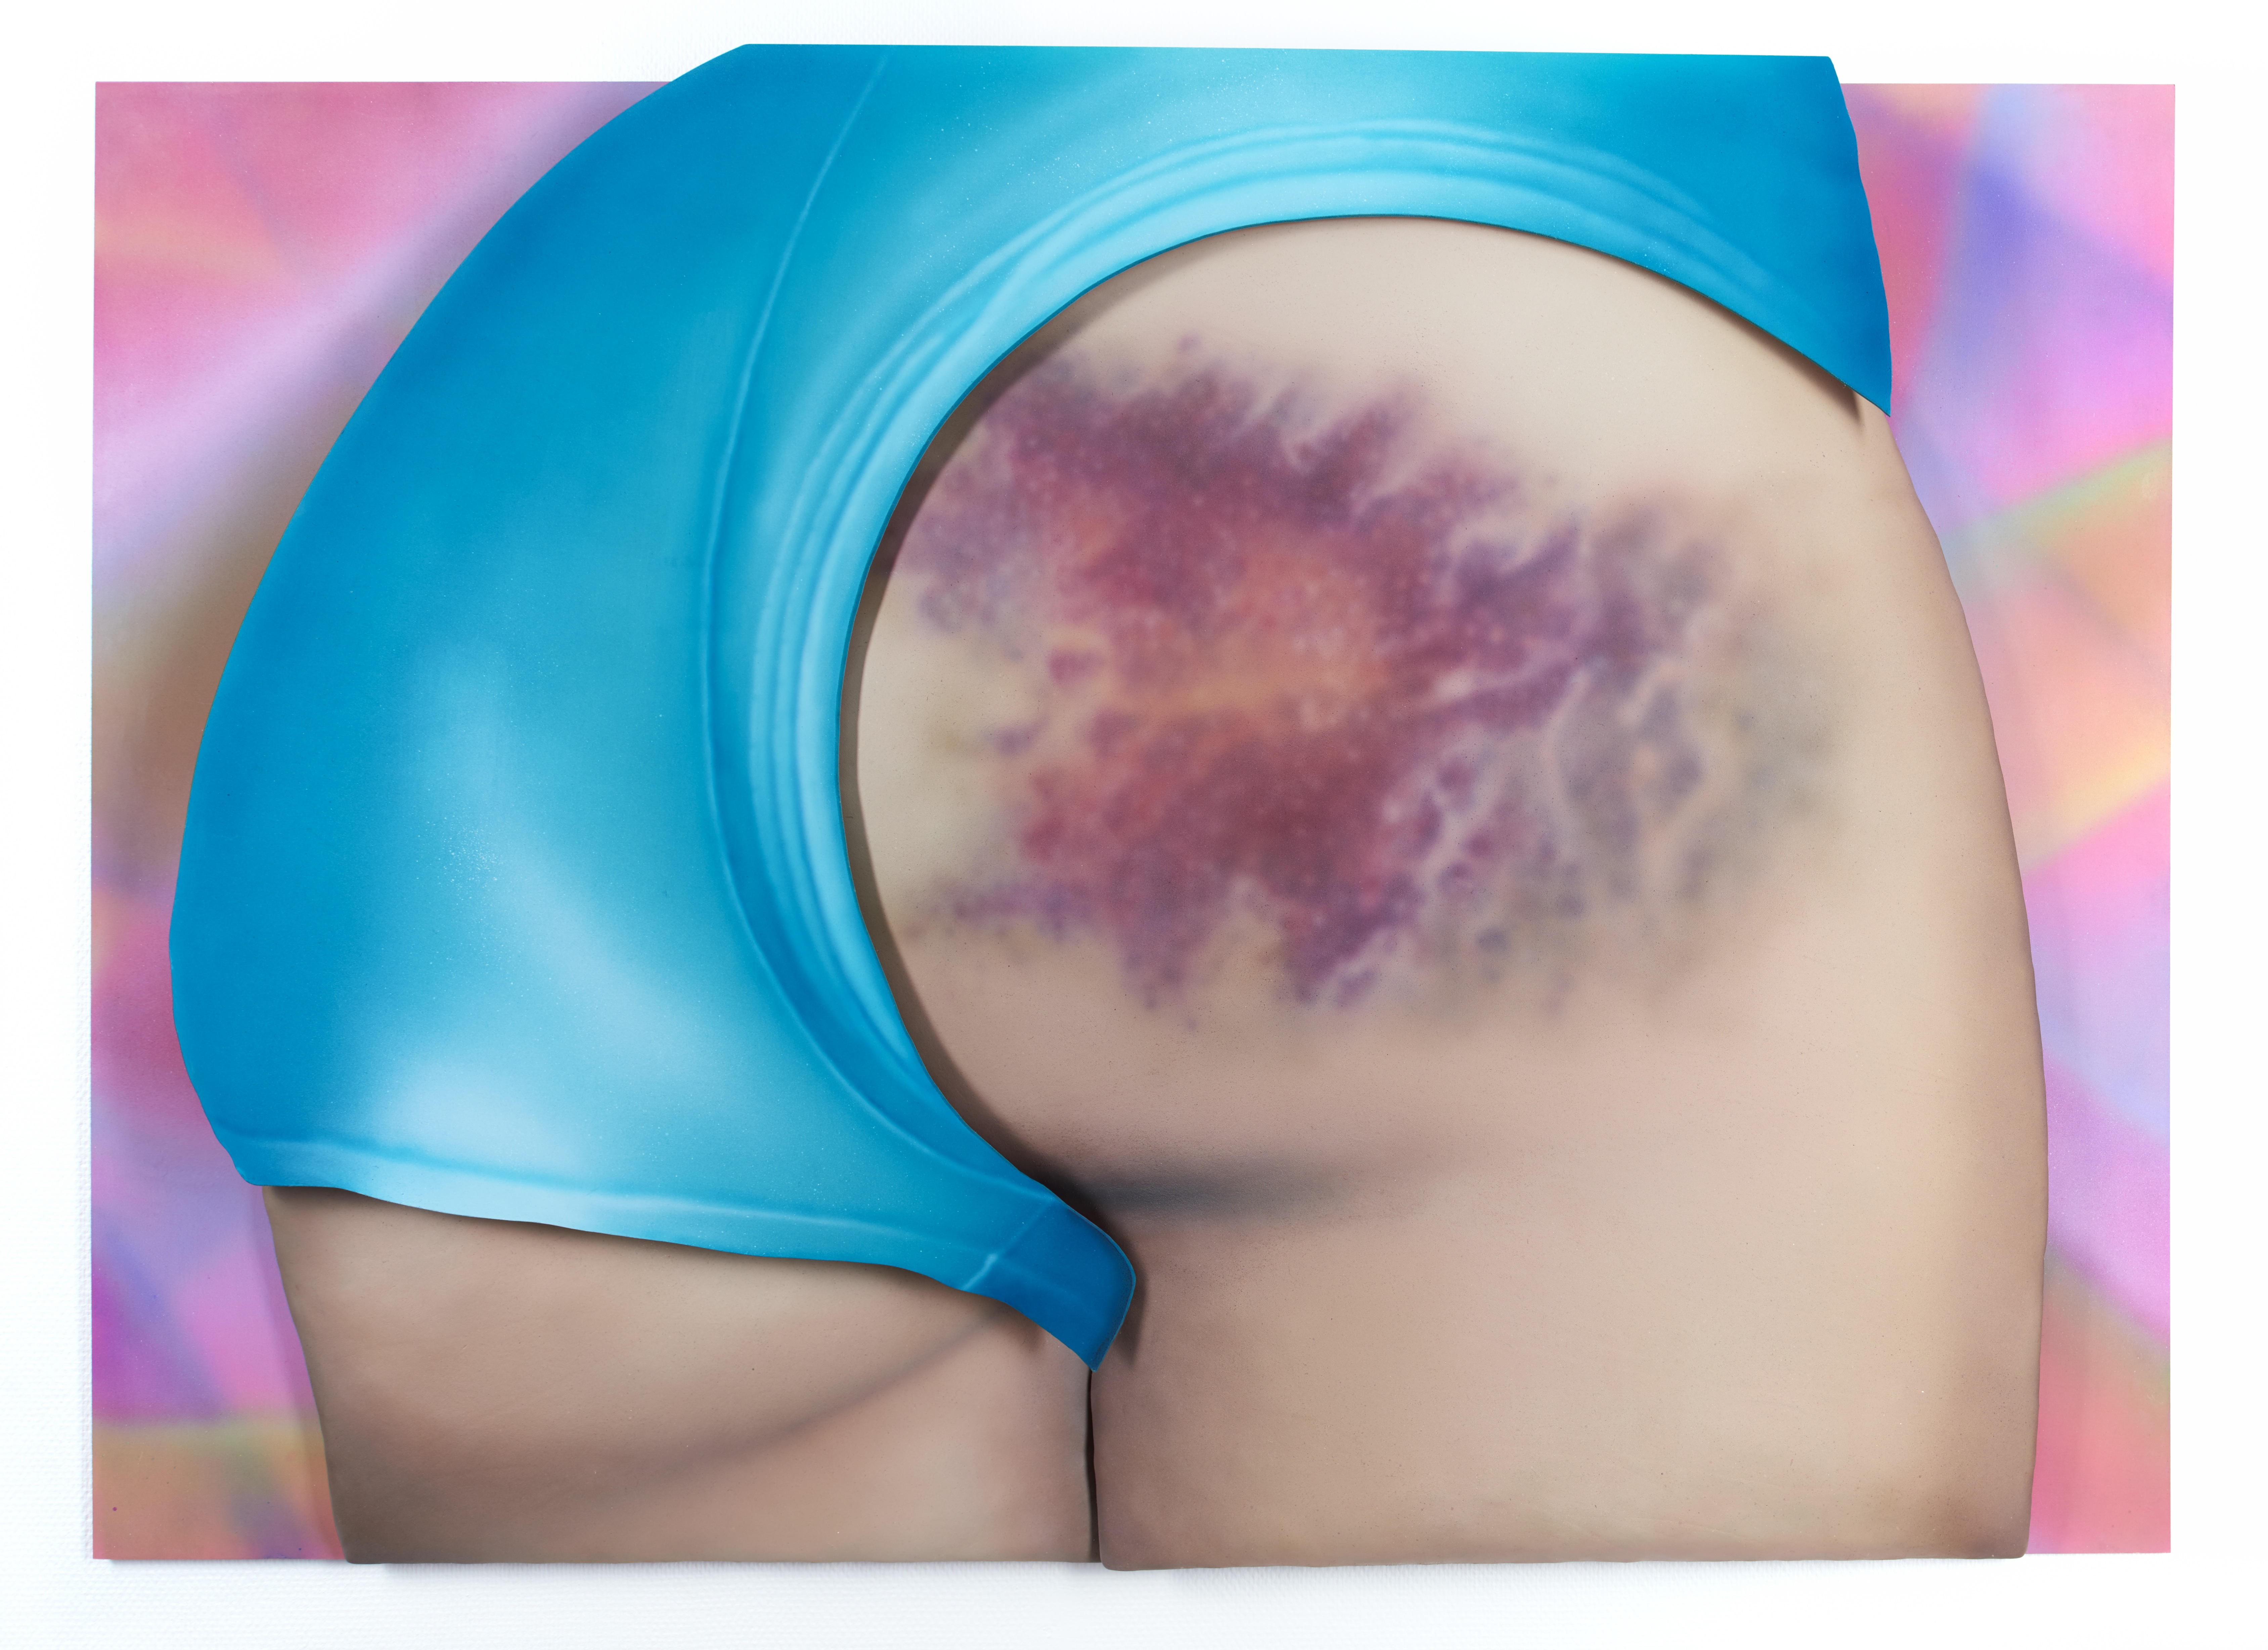 Riikka Hyvönen - I Got a Really Beautiful Bruise on My Bum, Do You Want To See a Pic It Has 12 Colours And Is the Size of My Head!, 2015, Acrylic on leather and MDF, 100 x 150 x 9 cm